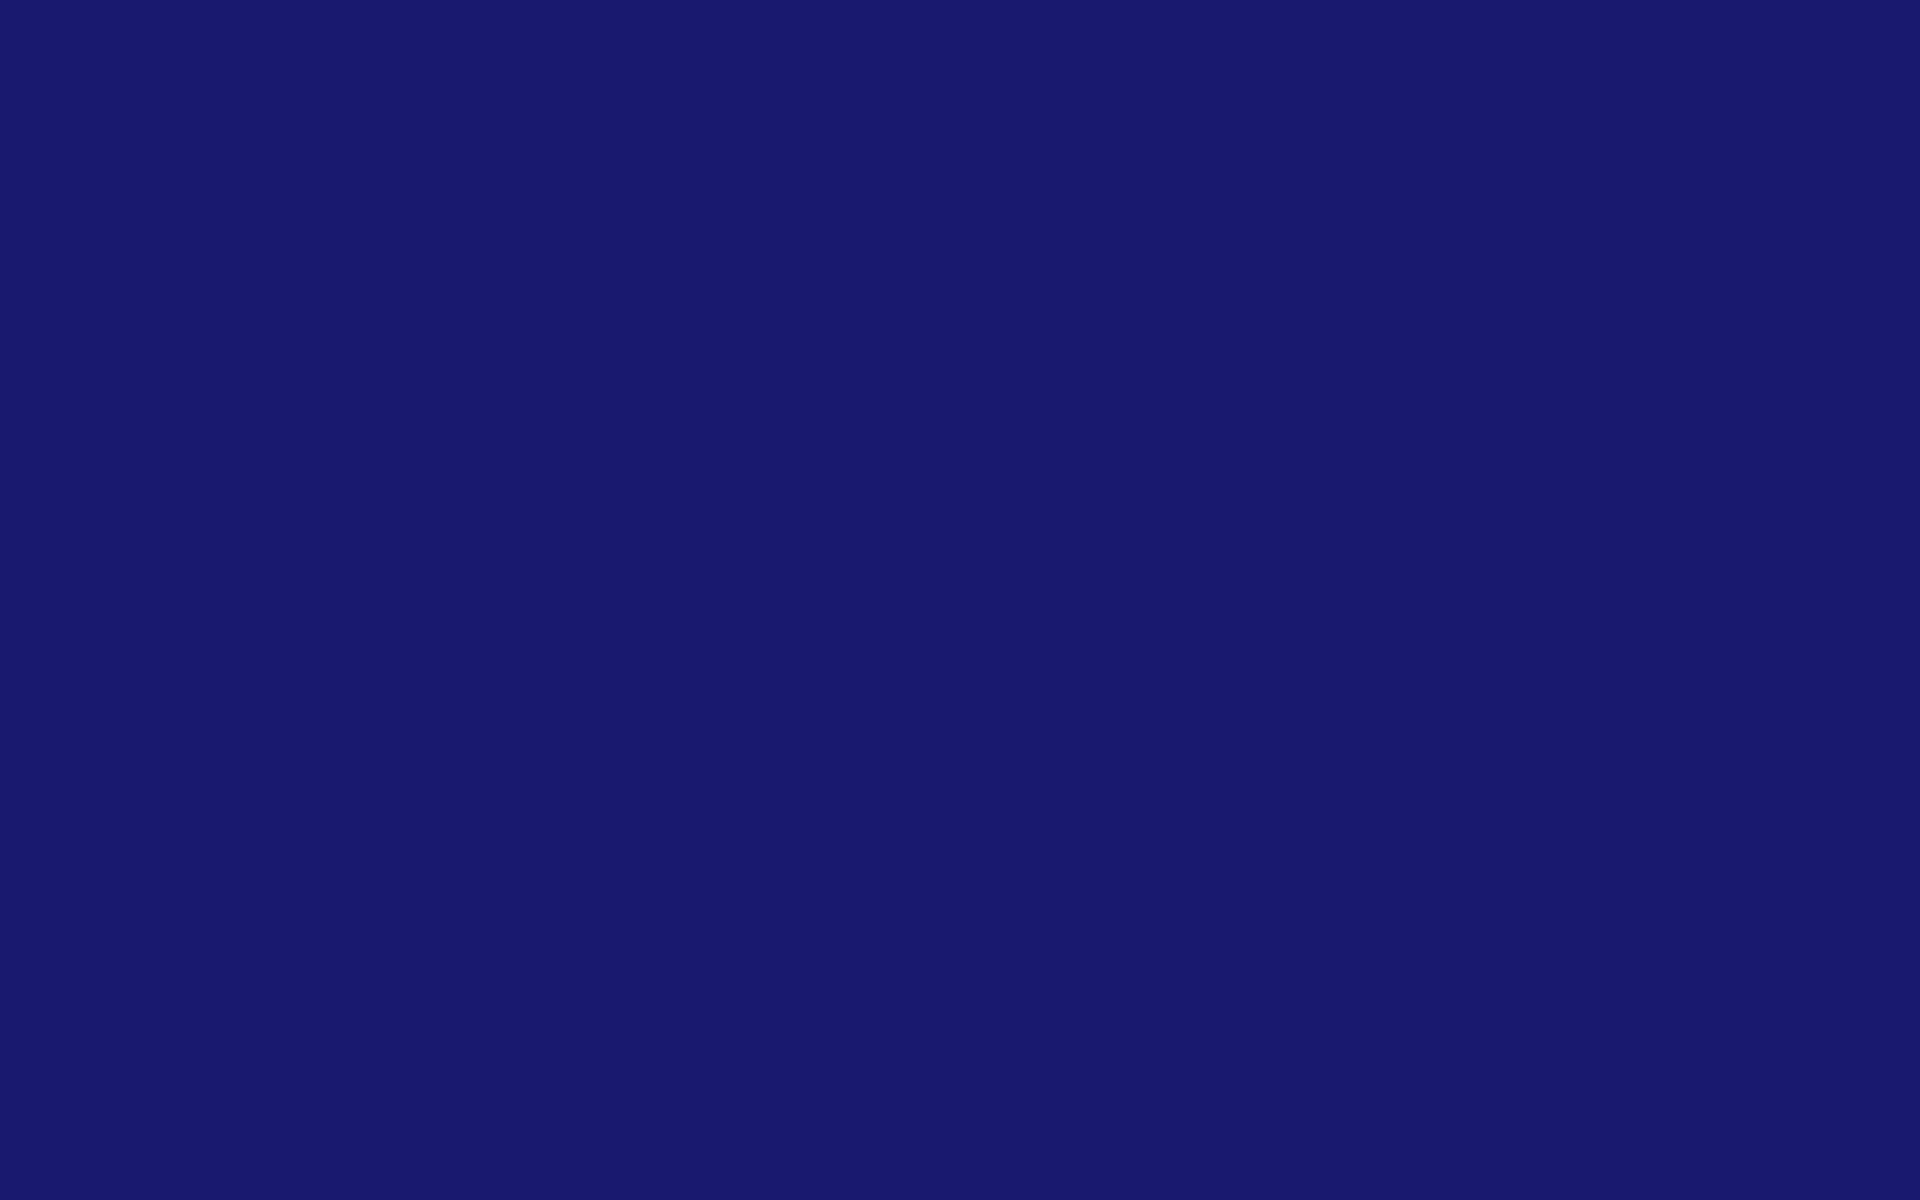 1920x1200 Midnight Blue Solid Color Background